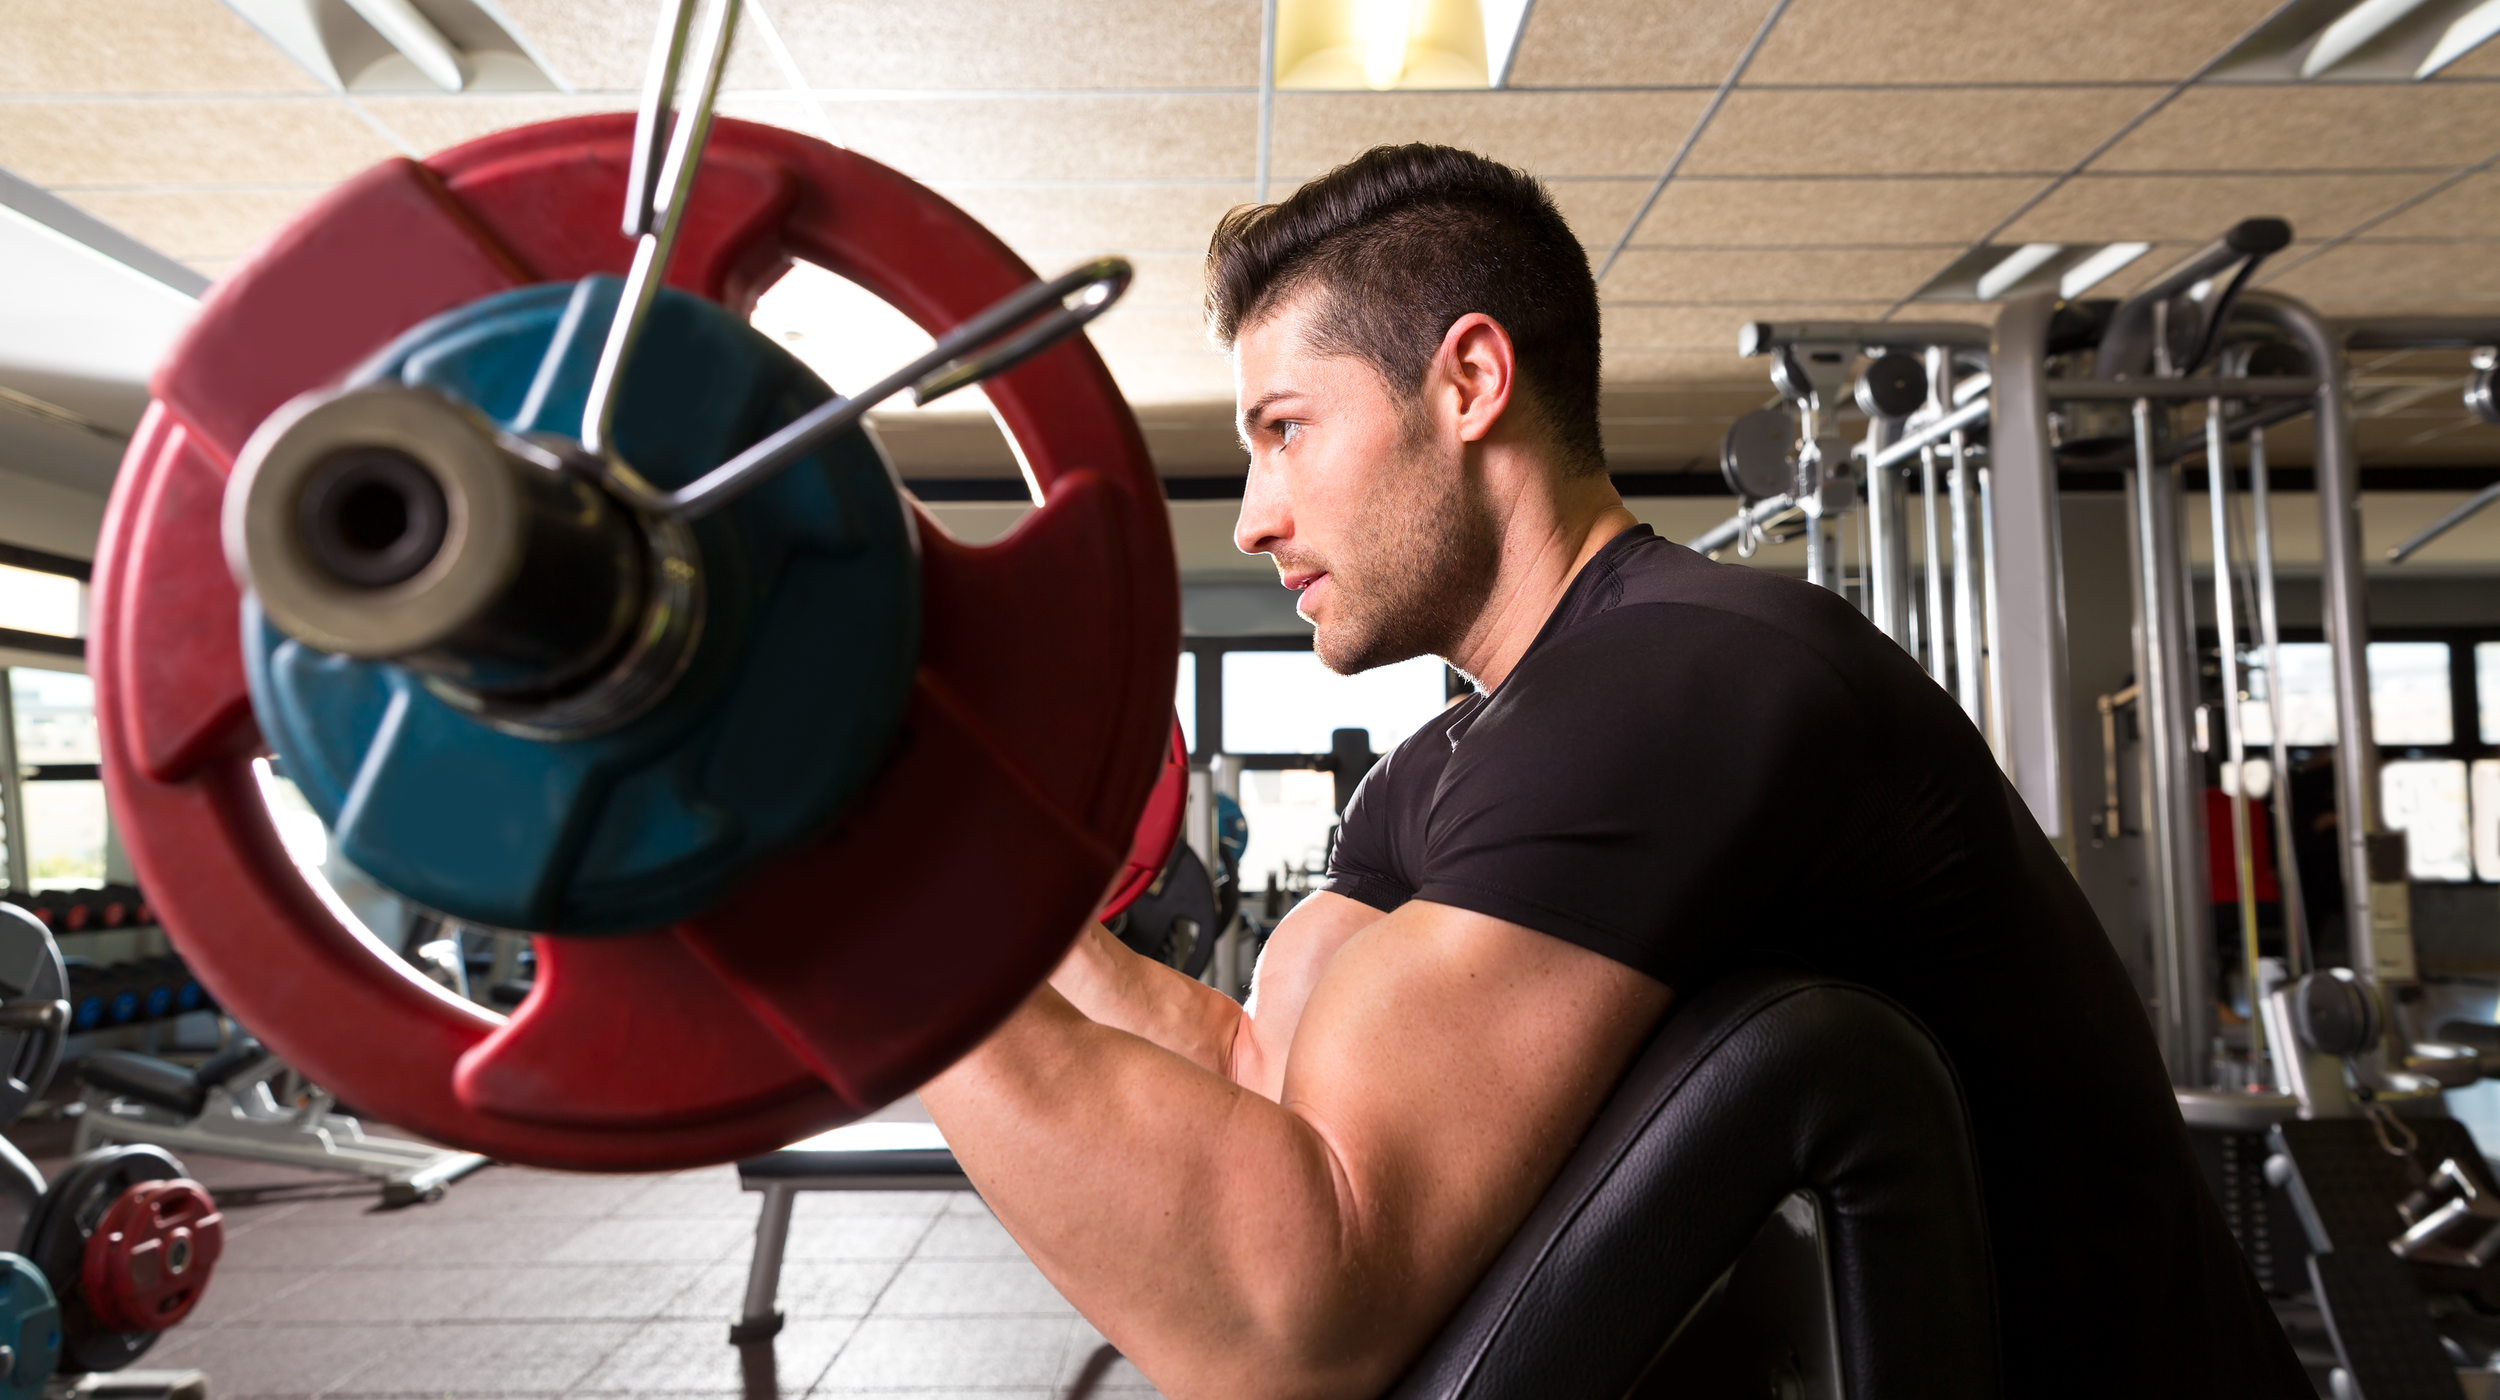 How to Get Big Arms if You are a Skinny Guy